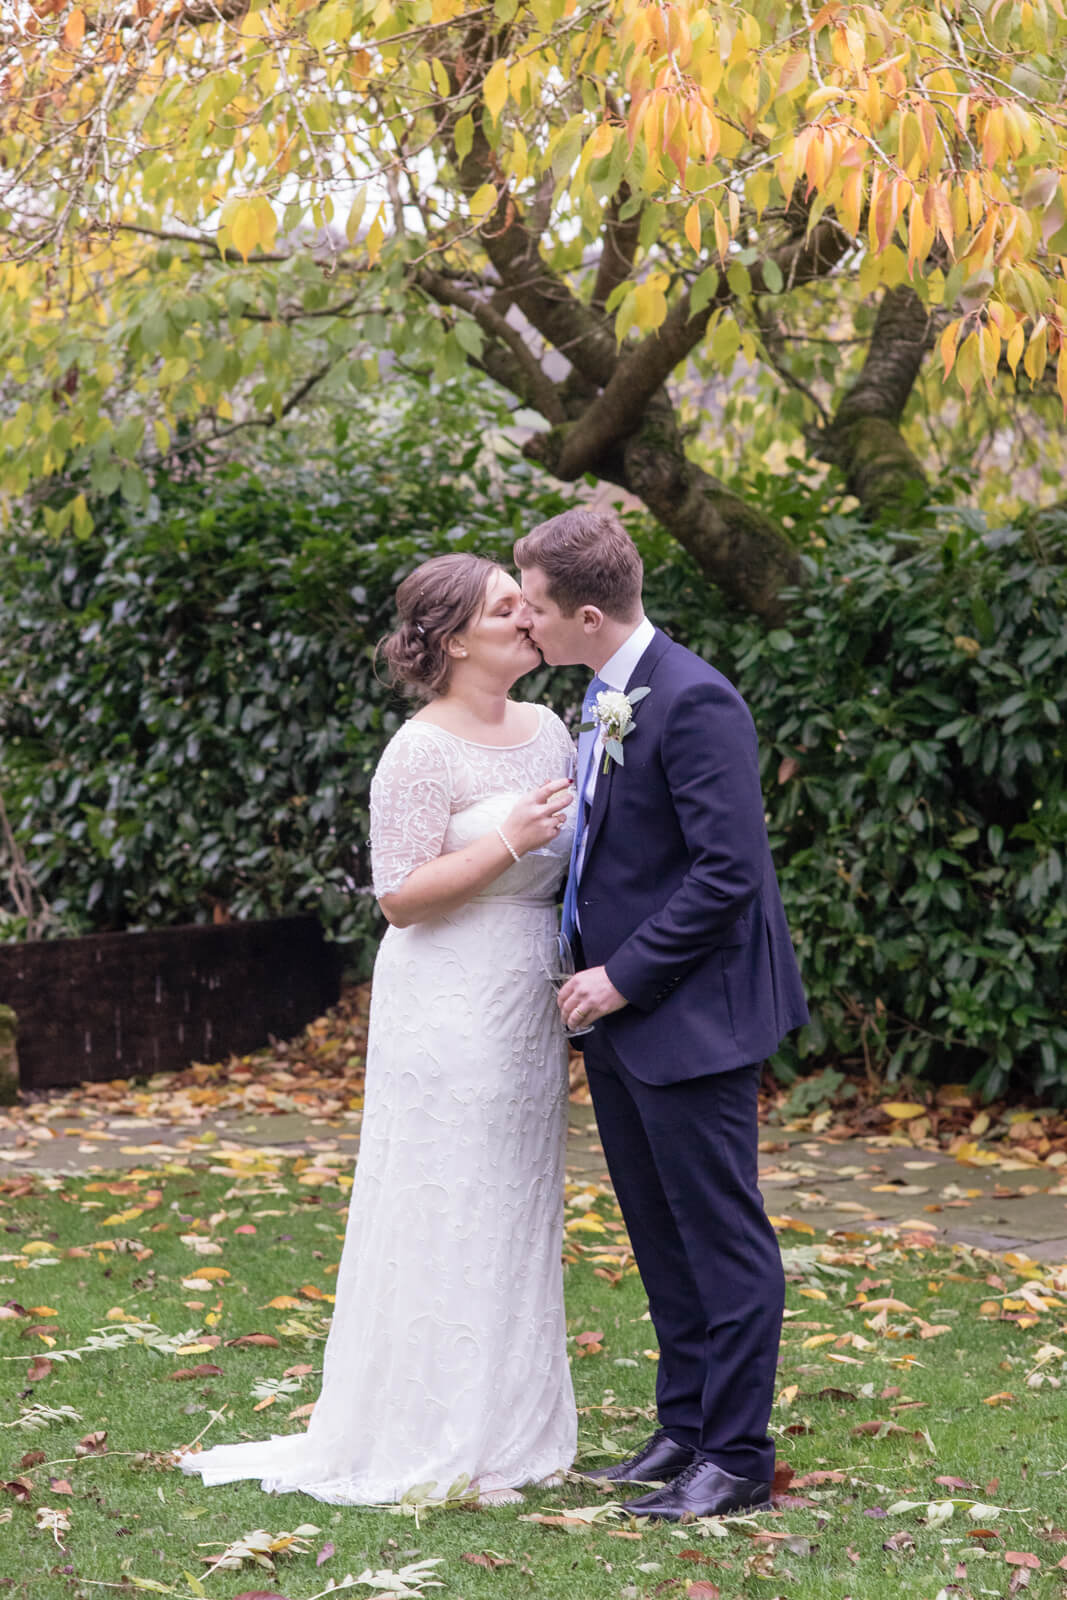 Bride and groom stand kissing under a tree with yellow leaves